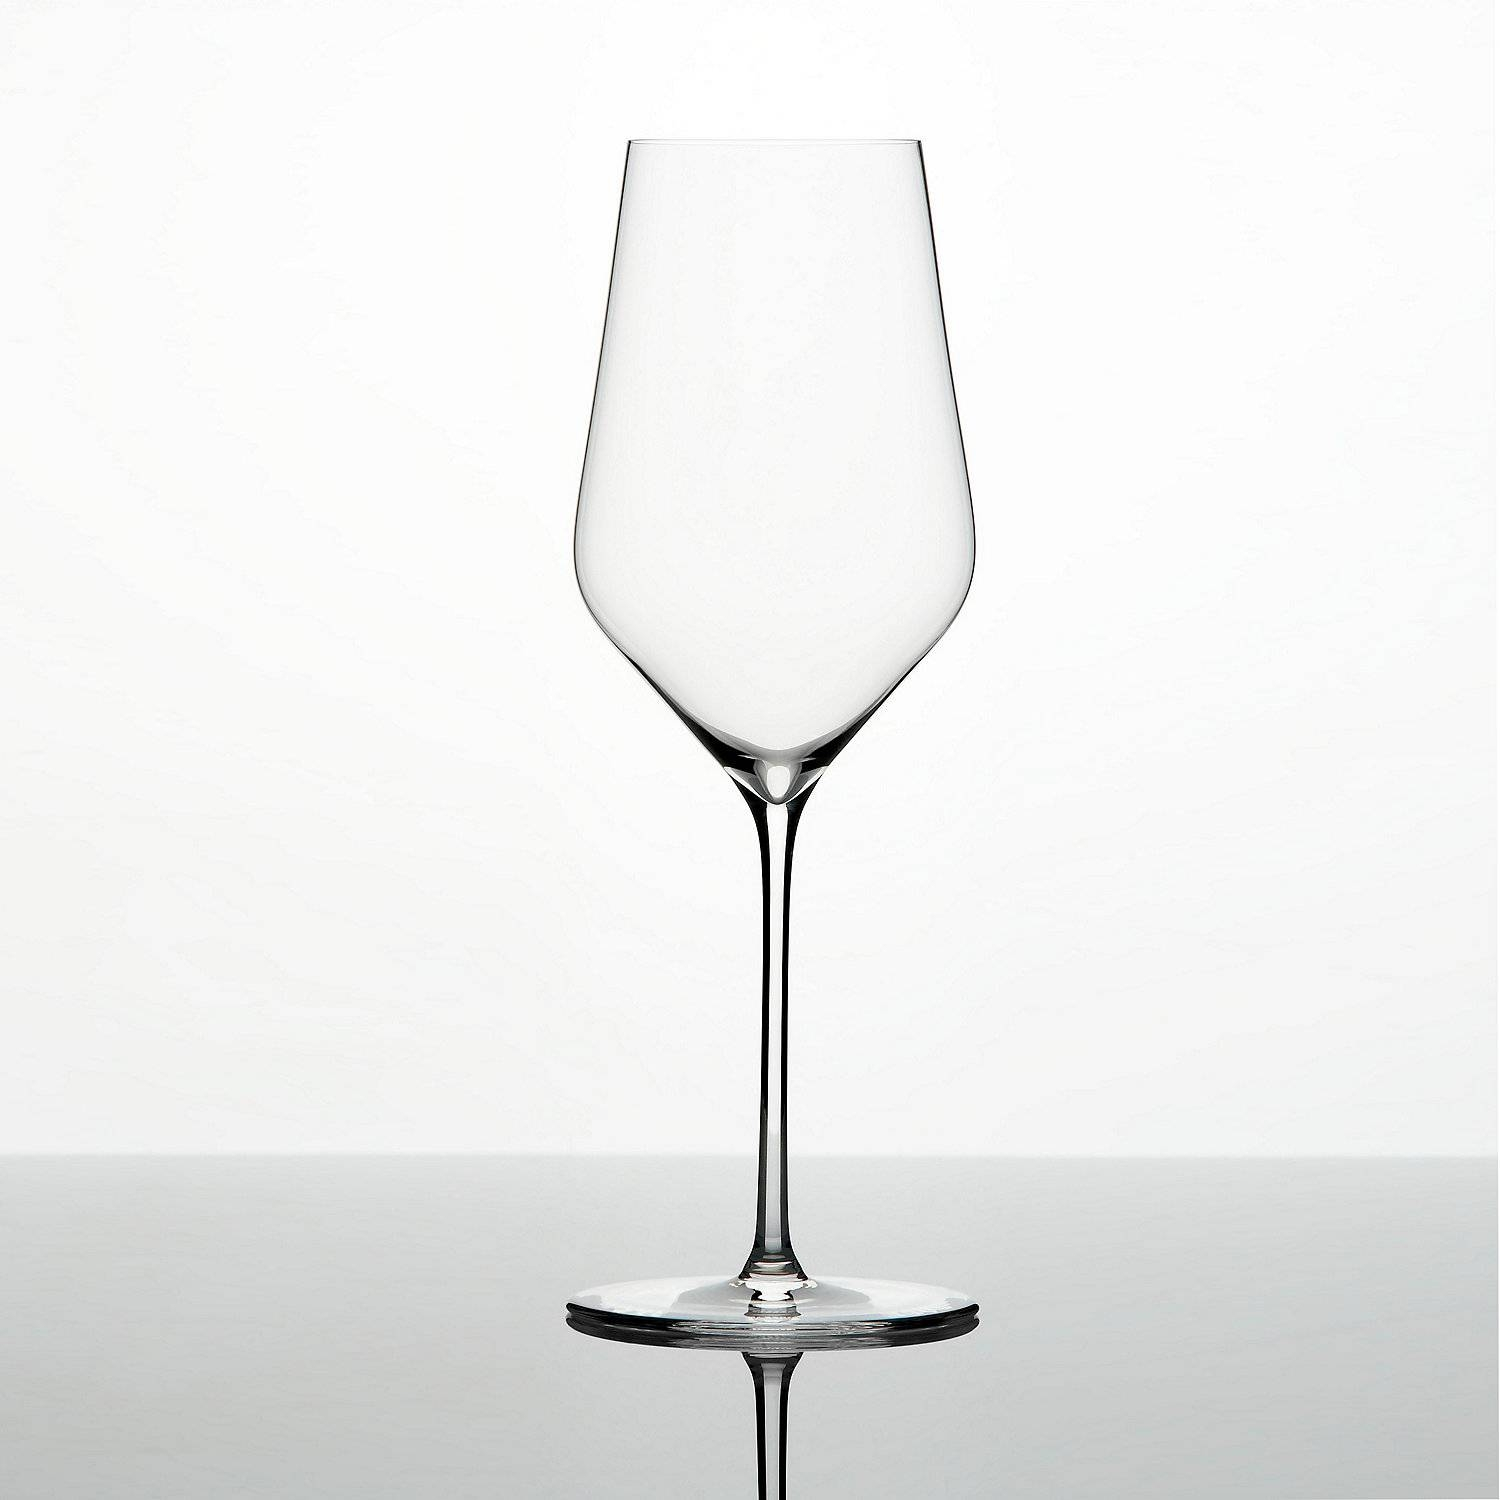 Zalto Denk'art White Wine Glass – Wine Enthusiast With Latest Martini Glass Wall Art (View 30 of 30)